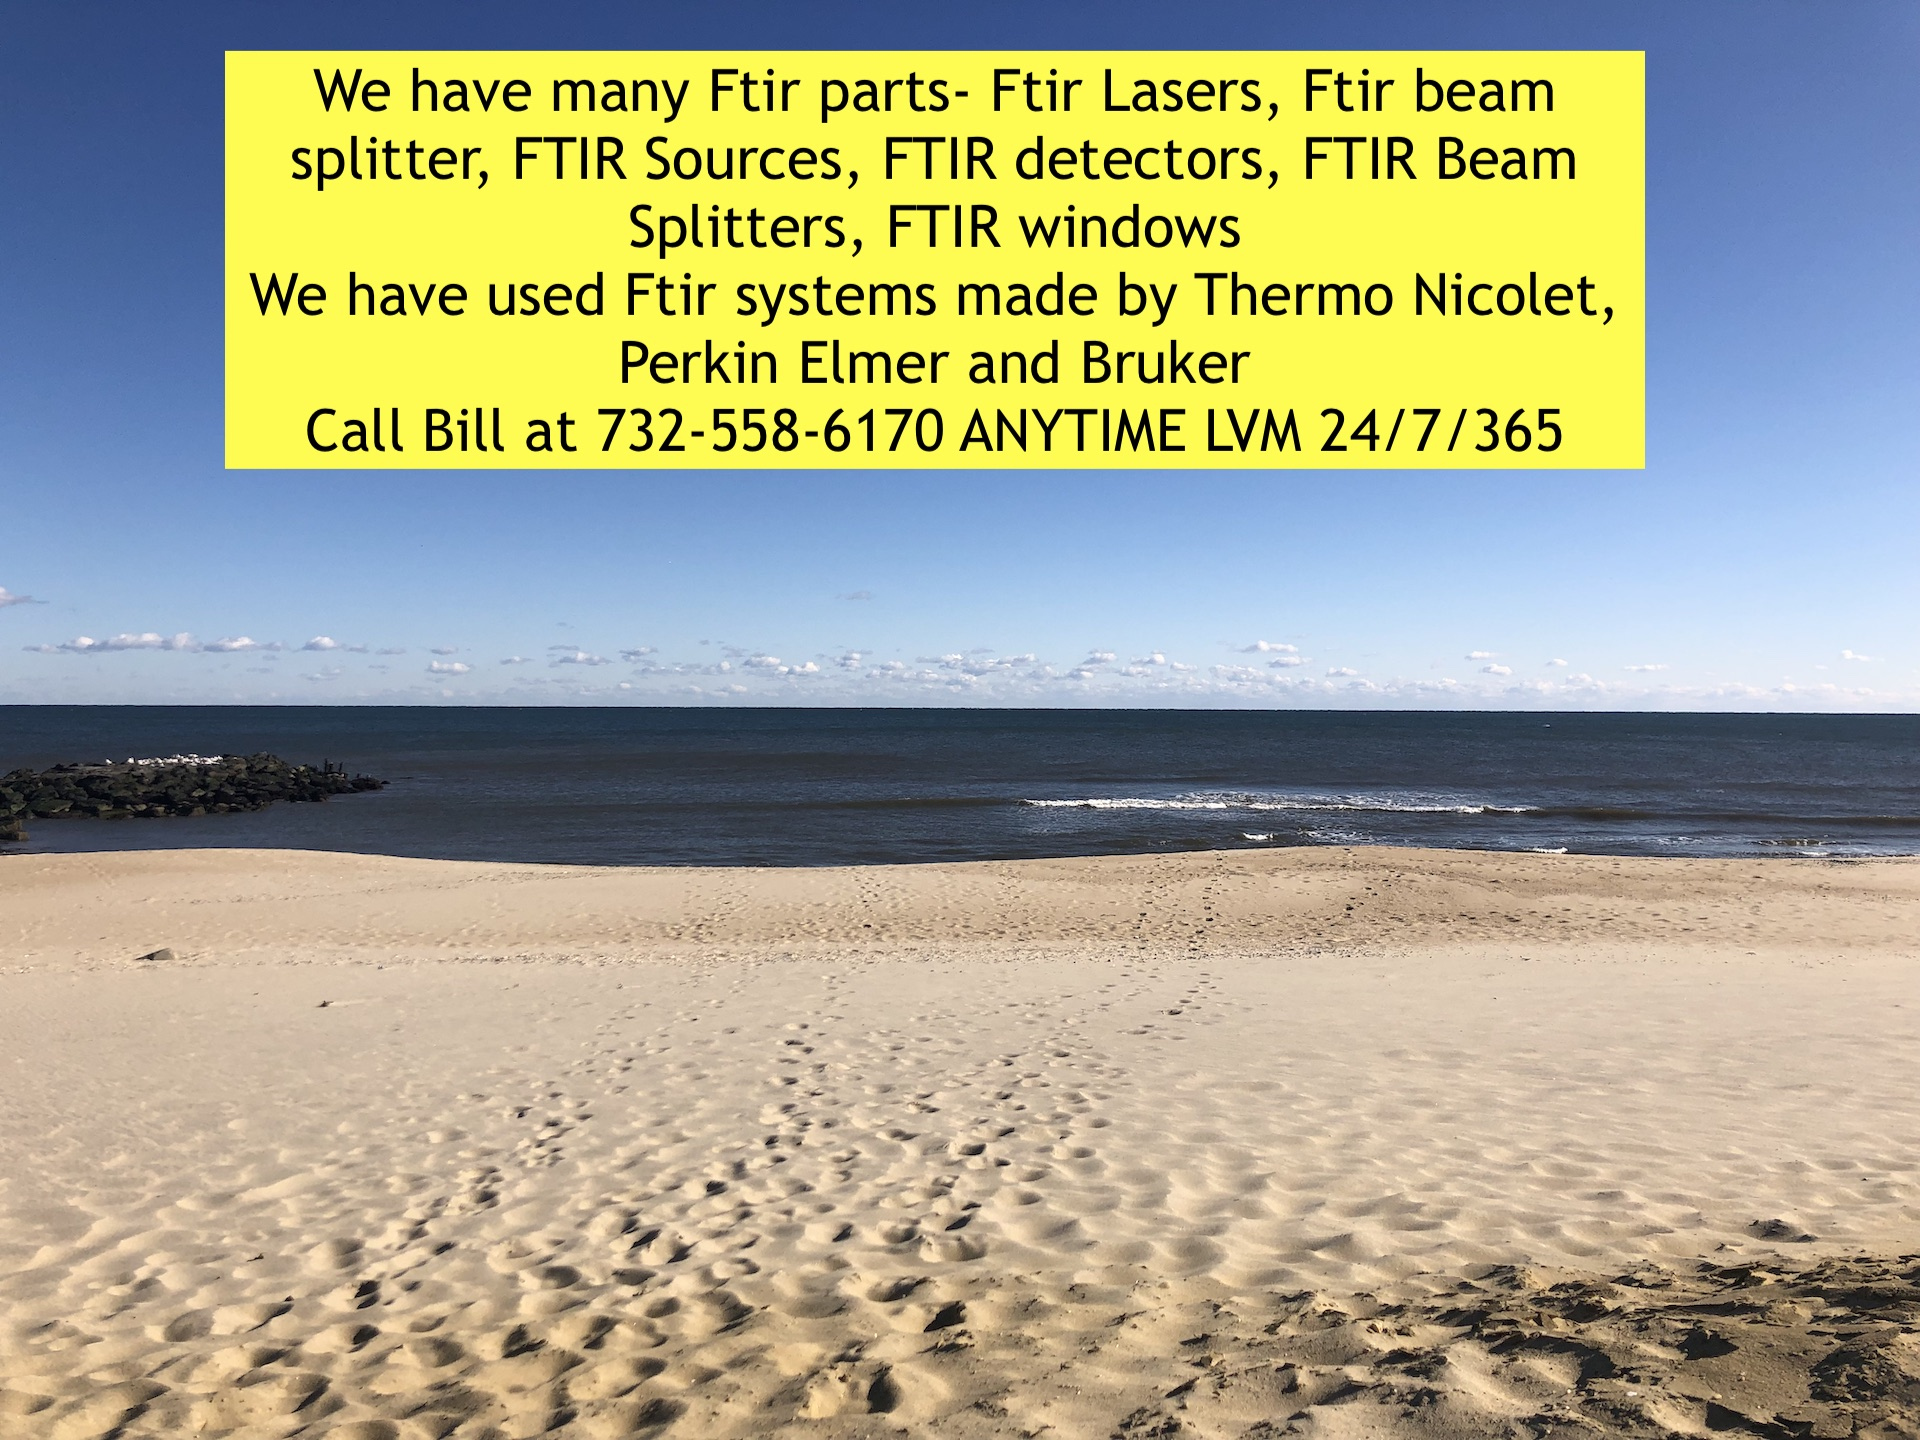 used Ftir systems, Ftir Lasers, Ftir beam splitter, FTIR Sources, FTIR detectors, FTIR Beam Splitter